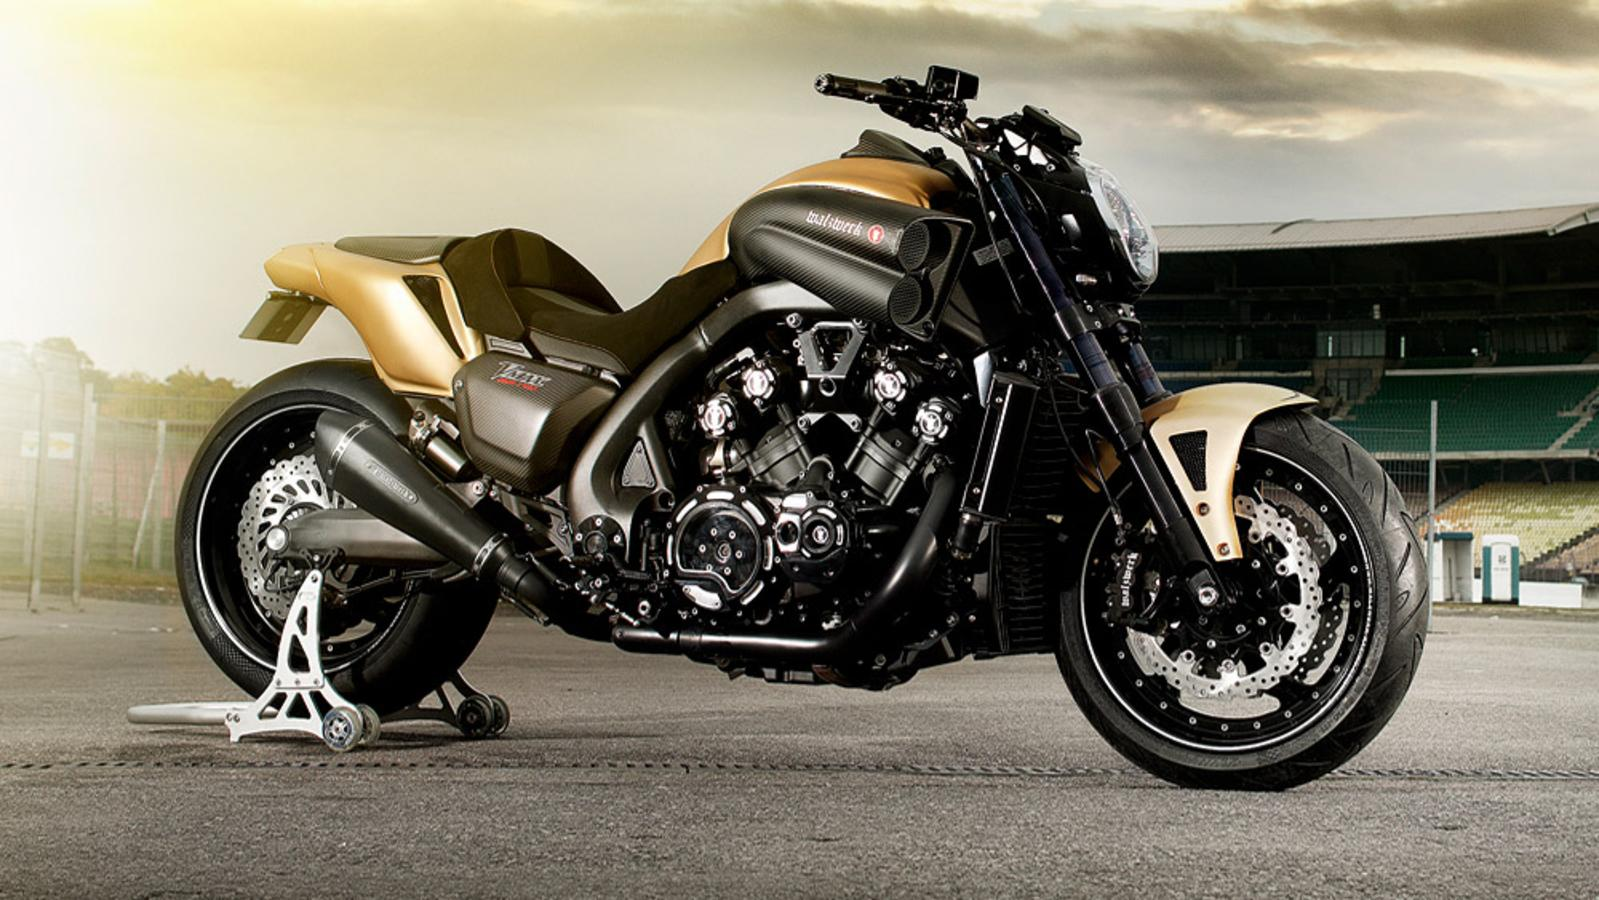 2008 Stratoliner Wiring Diagram 2006 Diagrams 2012 Yamaha V Max Hyper Modified By Marcus Walz Top Speed Sincgars Radio Configurations